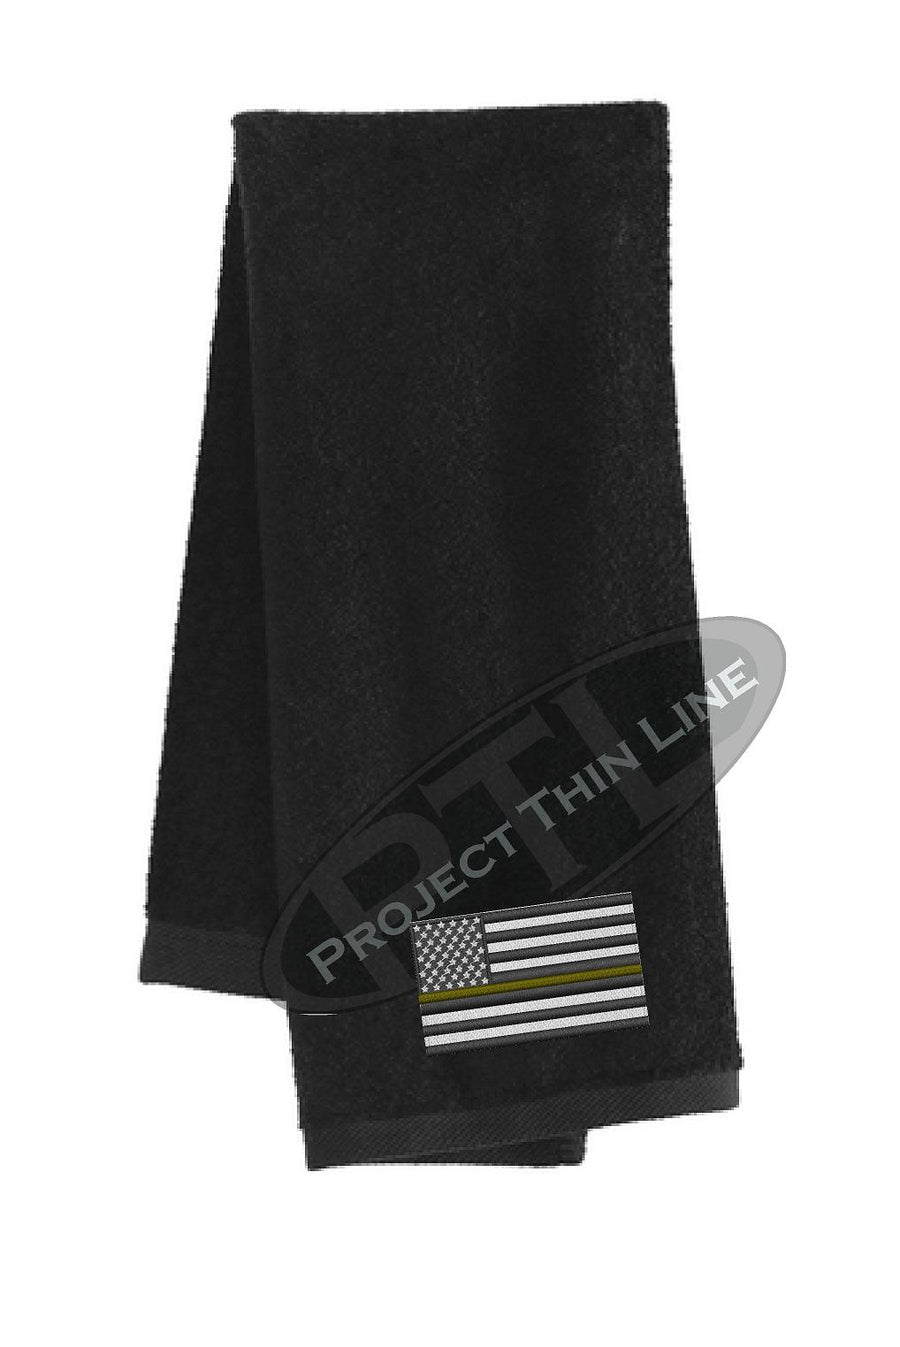 Thin GOLD Line Flag Workout Gym Towel